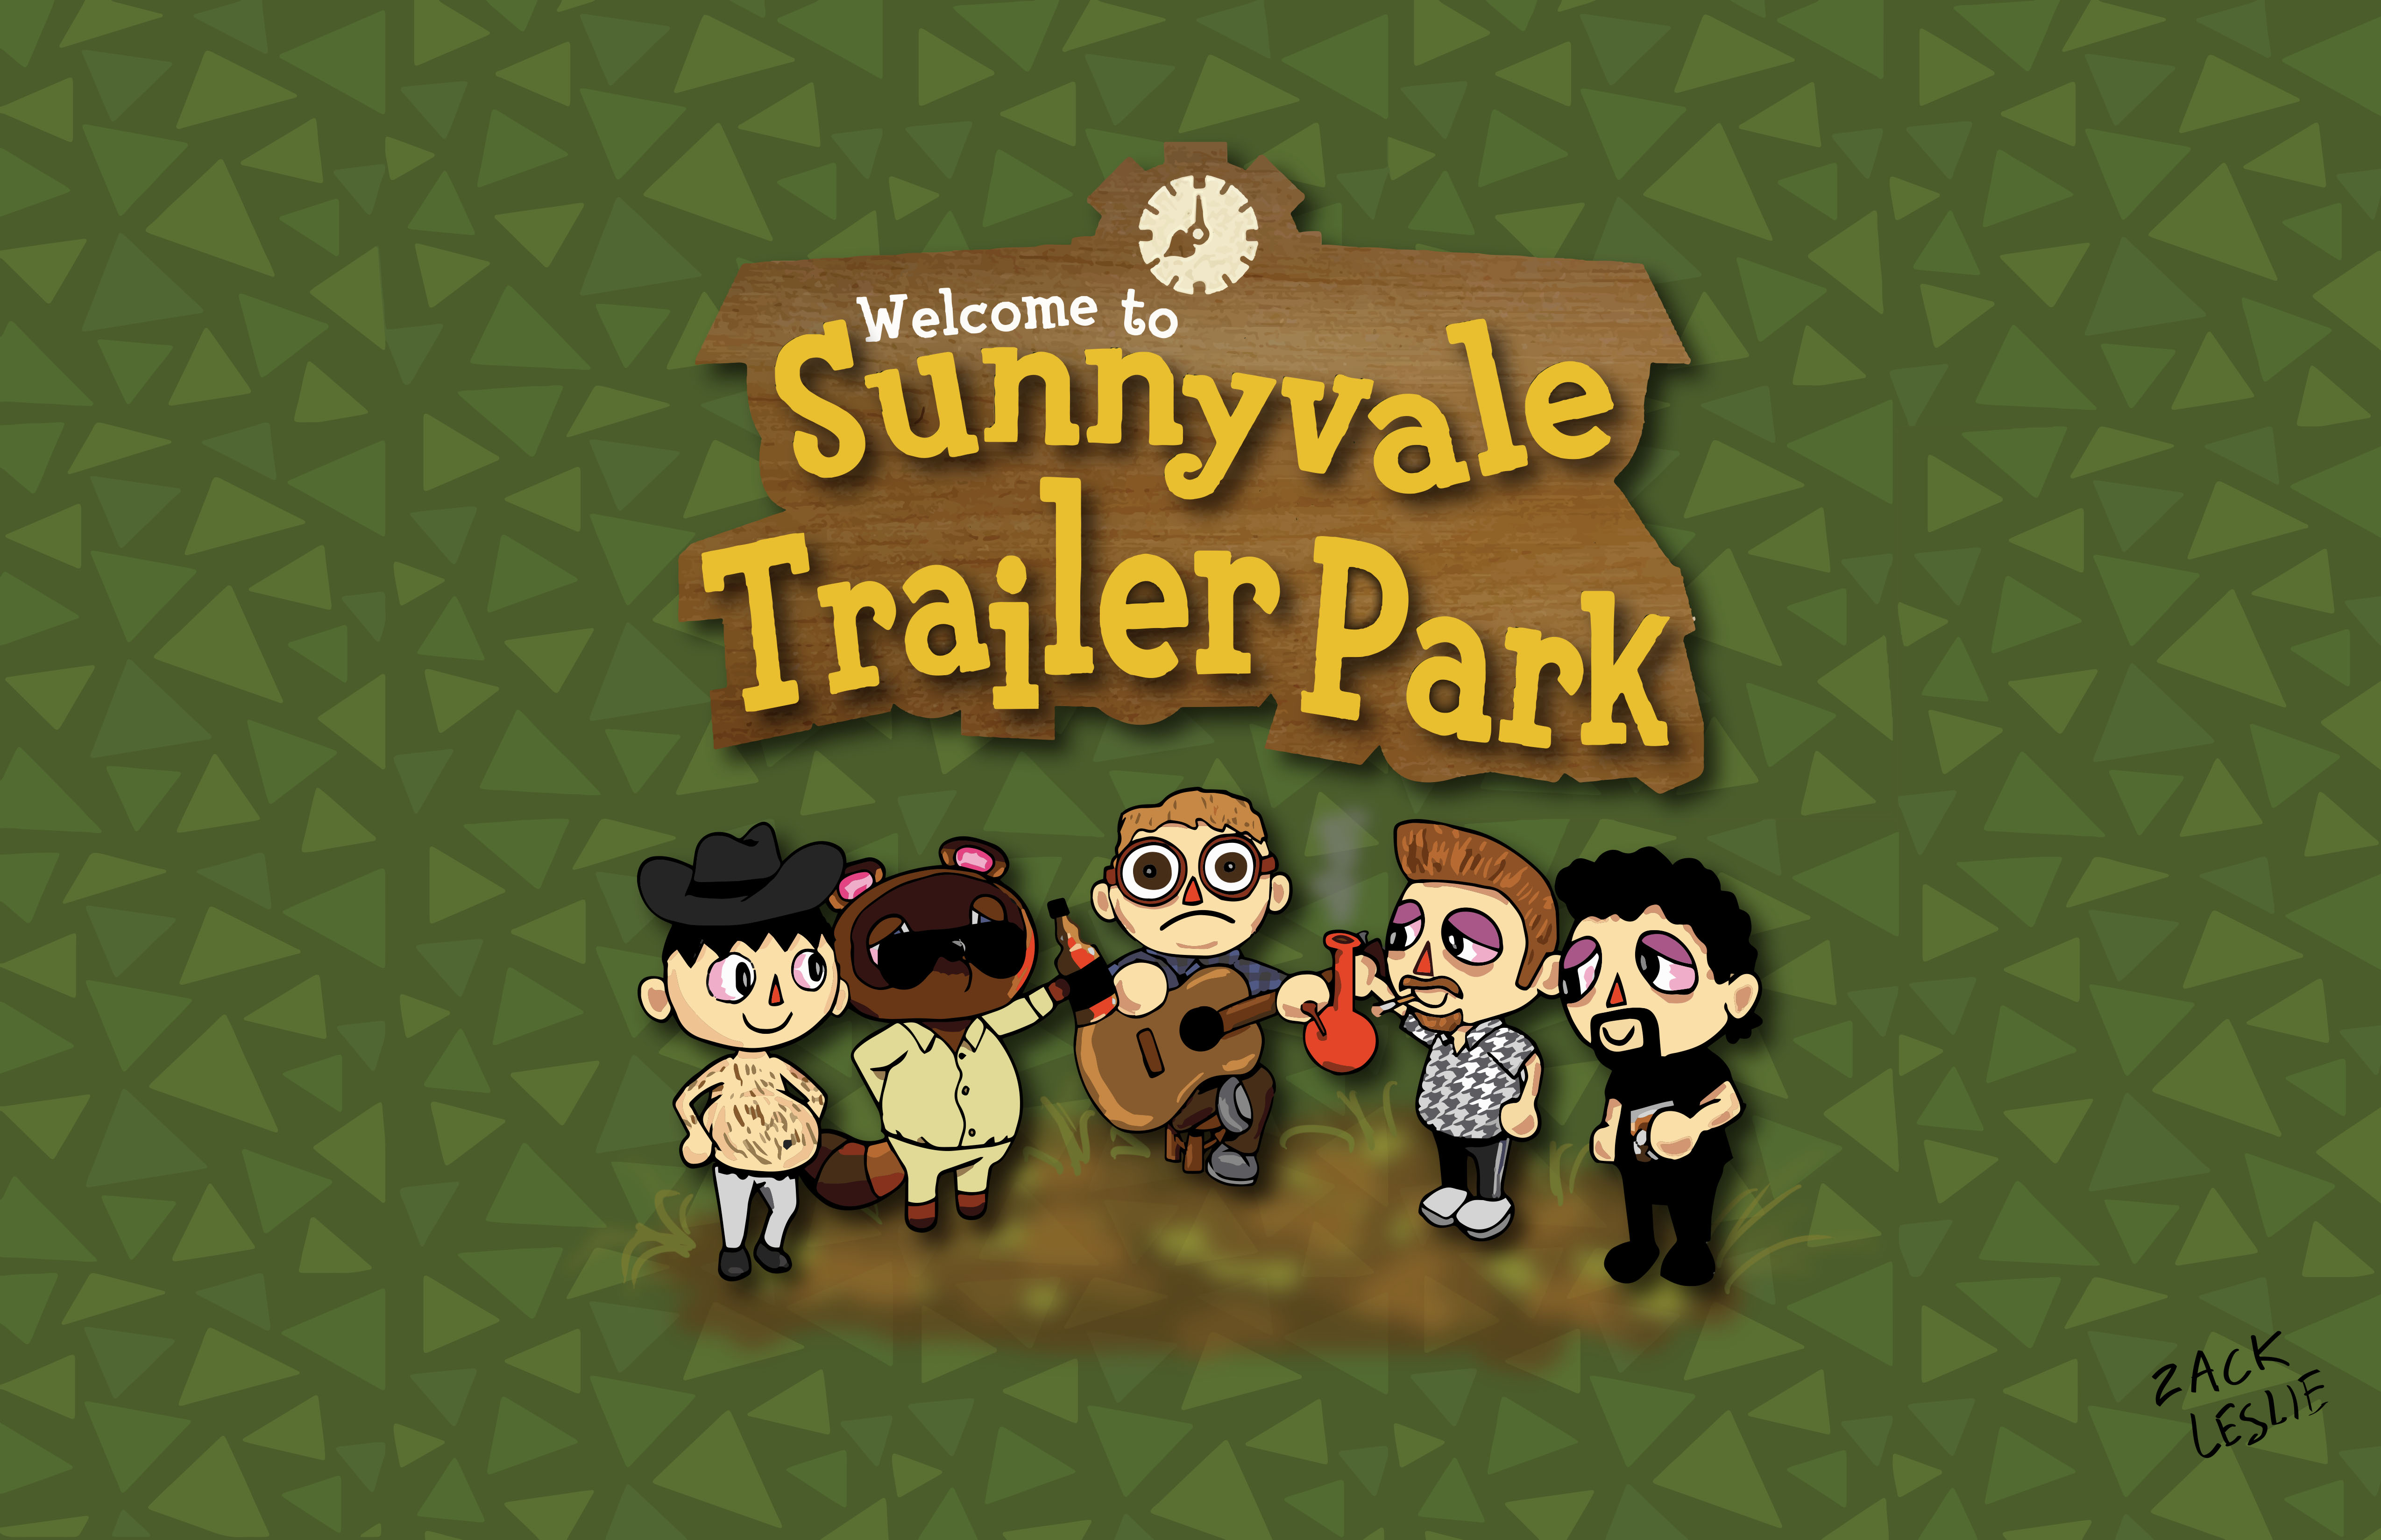 WELCOME TO SUNNYVALE TRAILER PARK